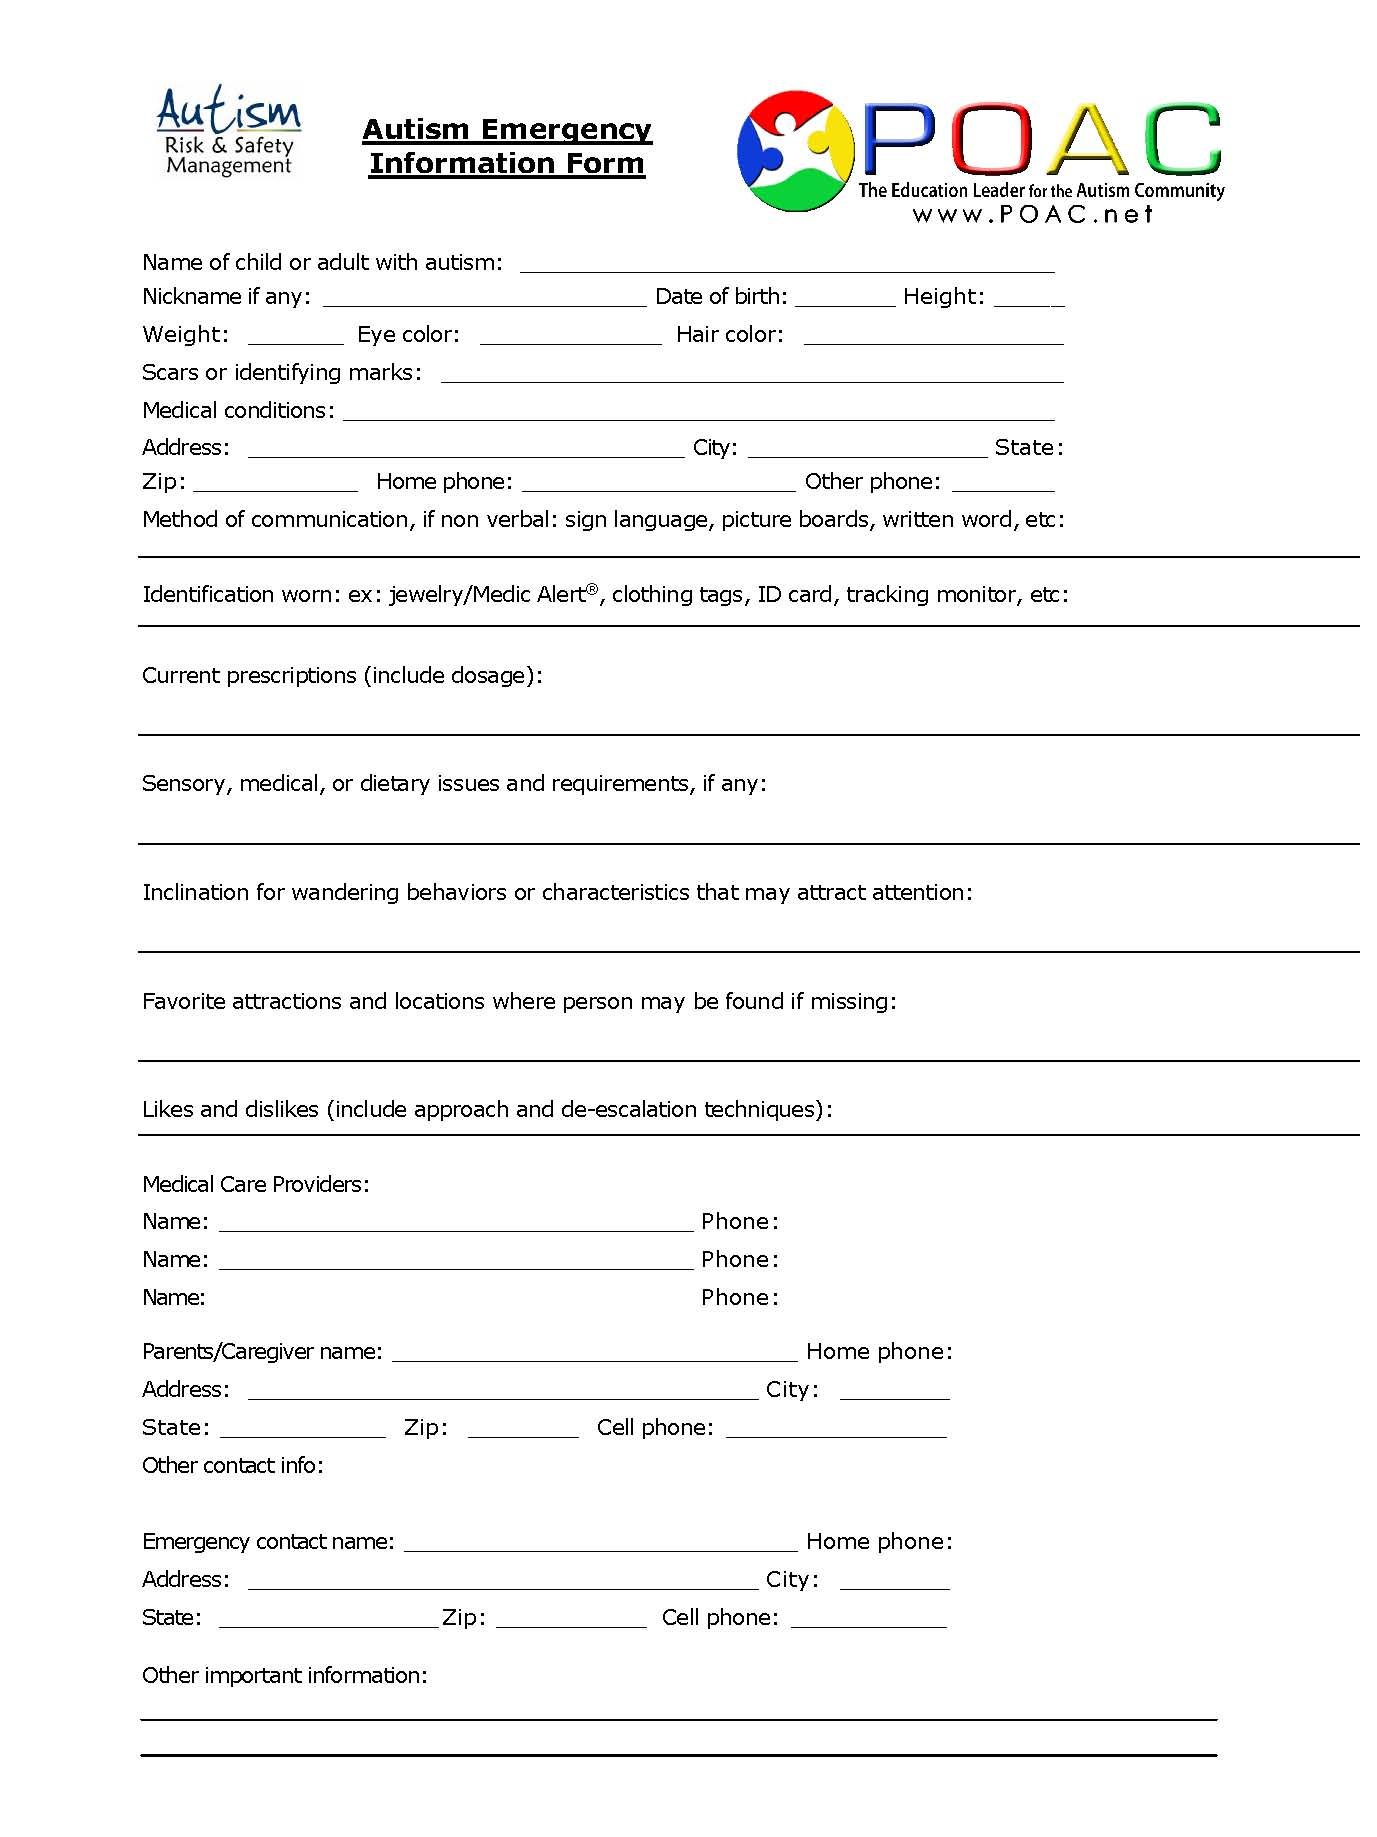 Autism Emergency Information Form